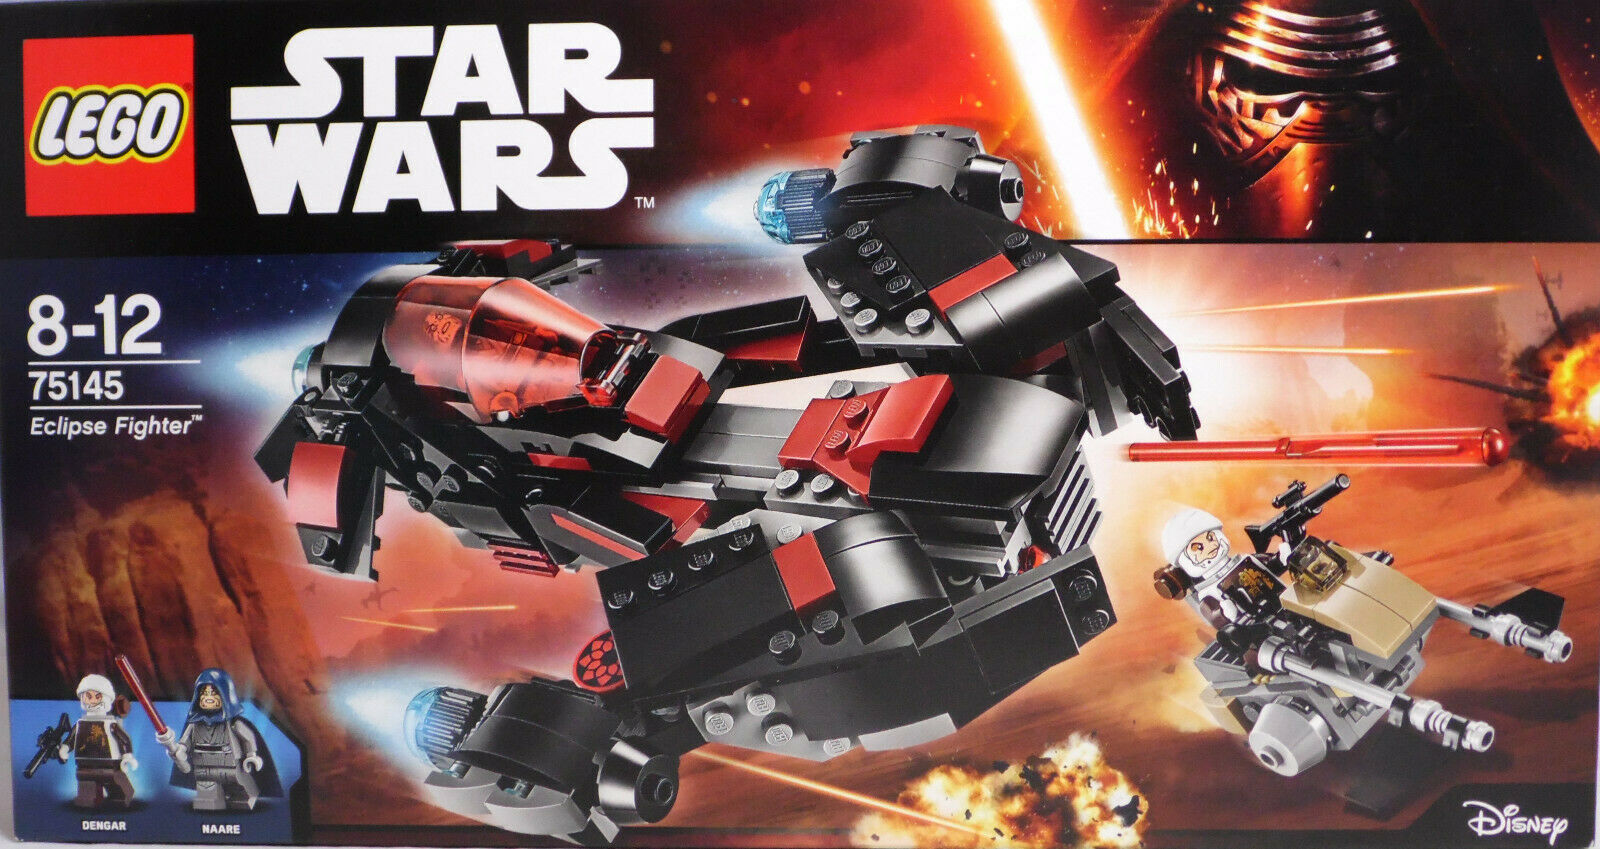 Lego Star Wars 75145 Eclipse Fighter Dengar Speeder Naare vaisseau NEUF